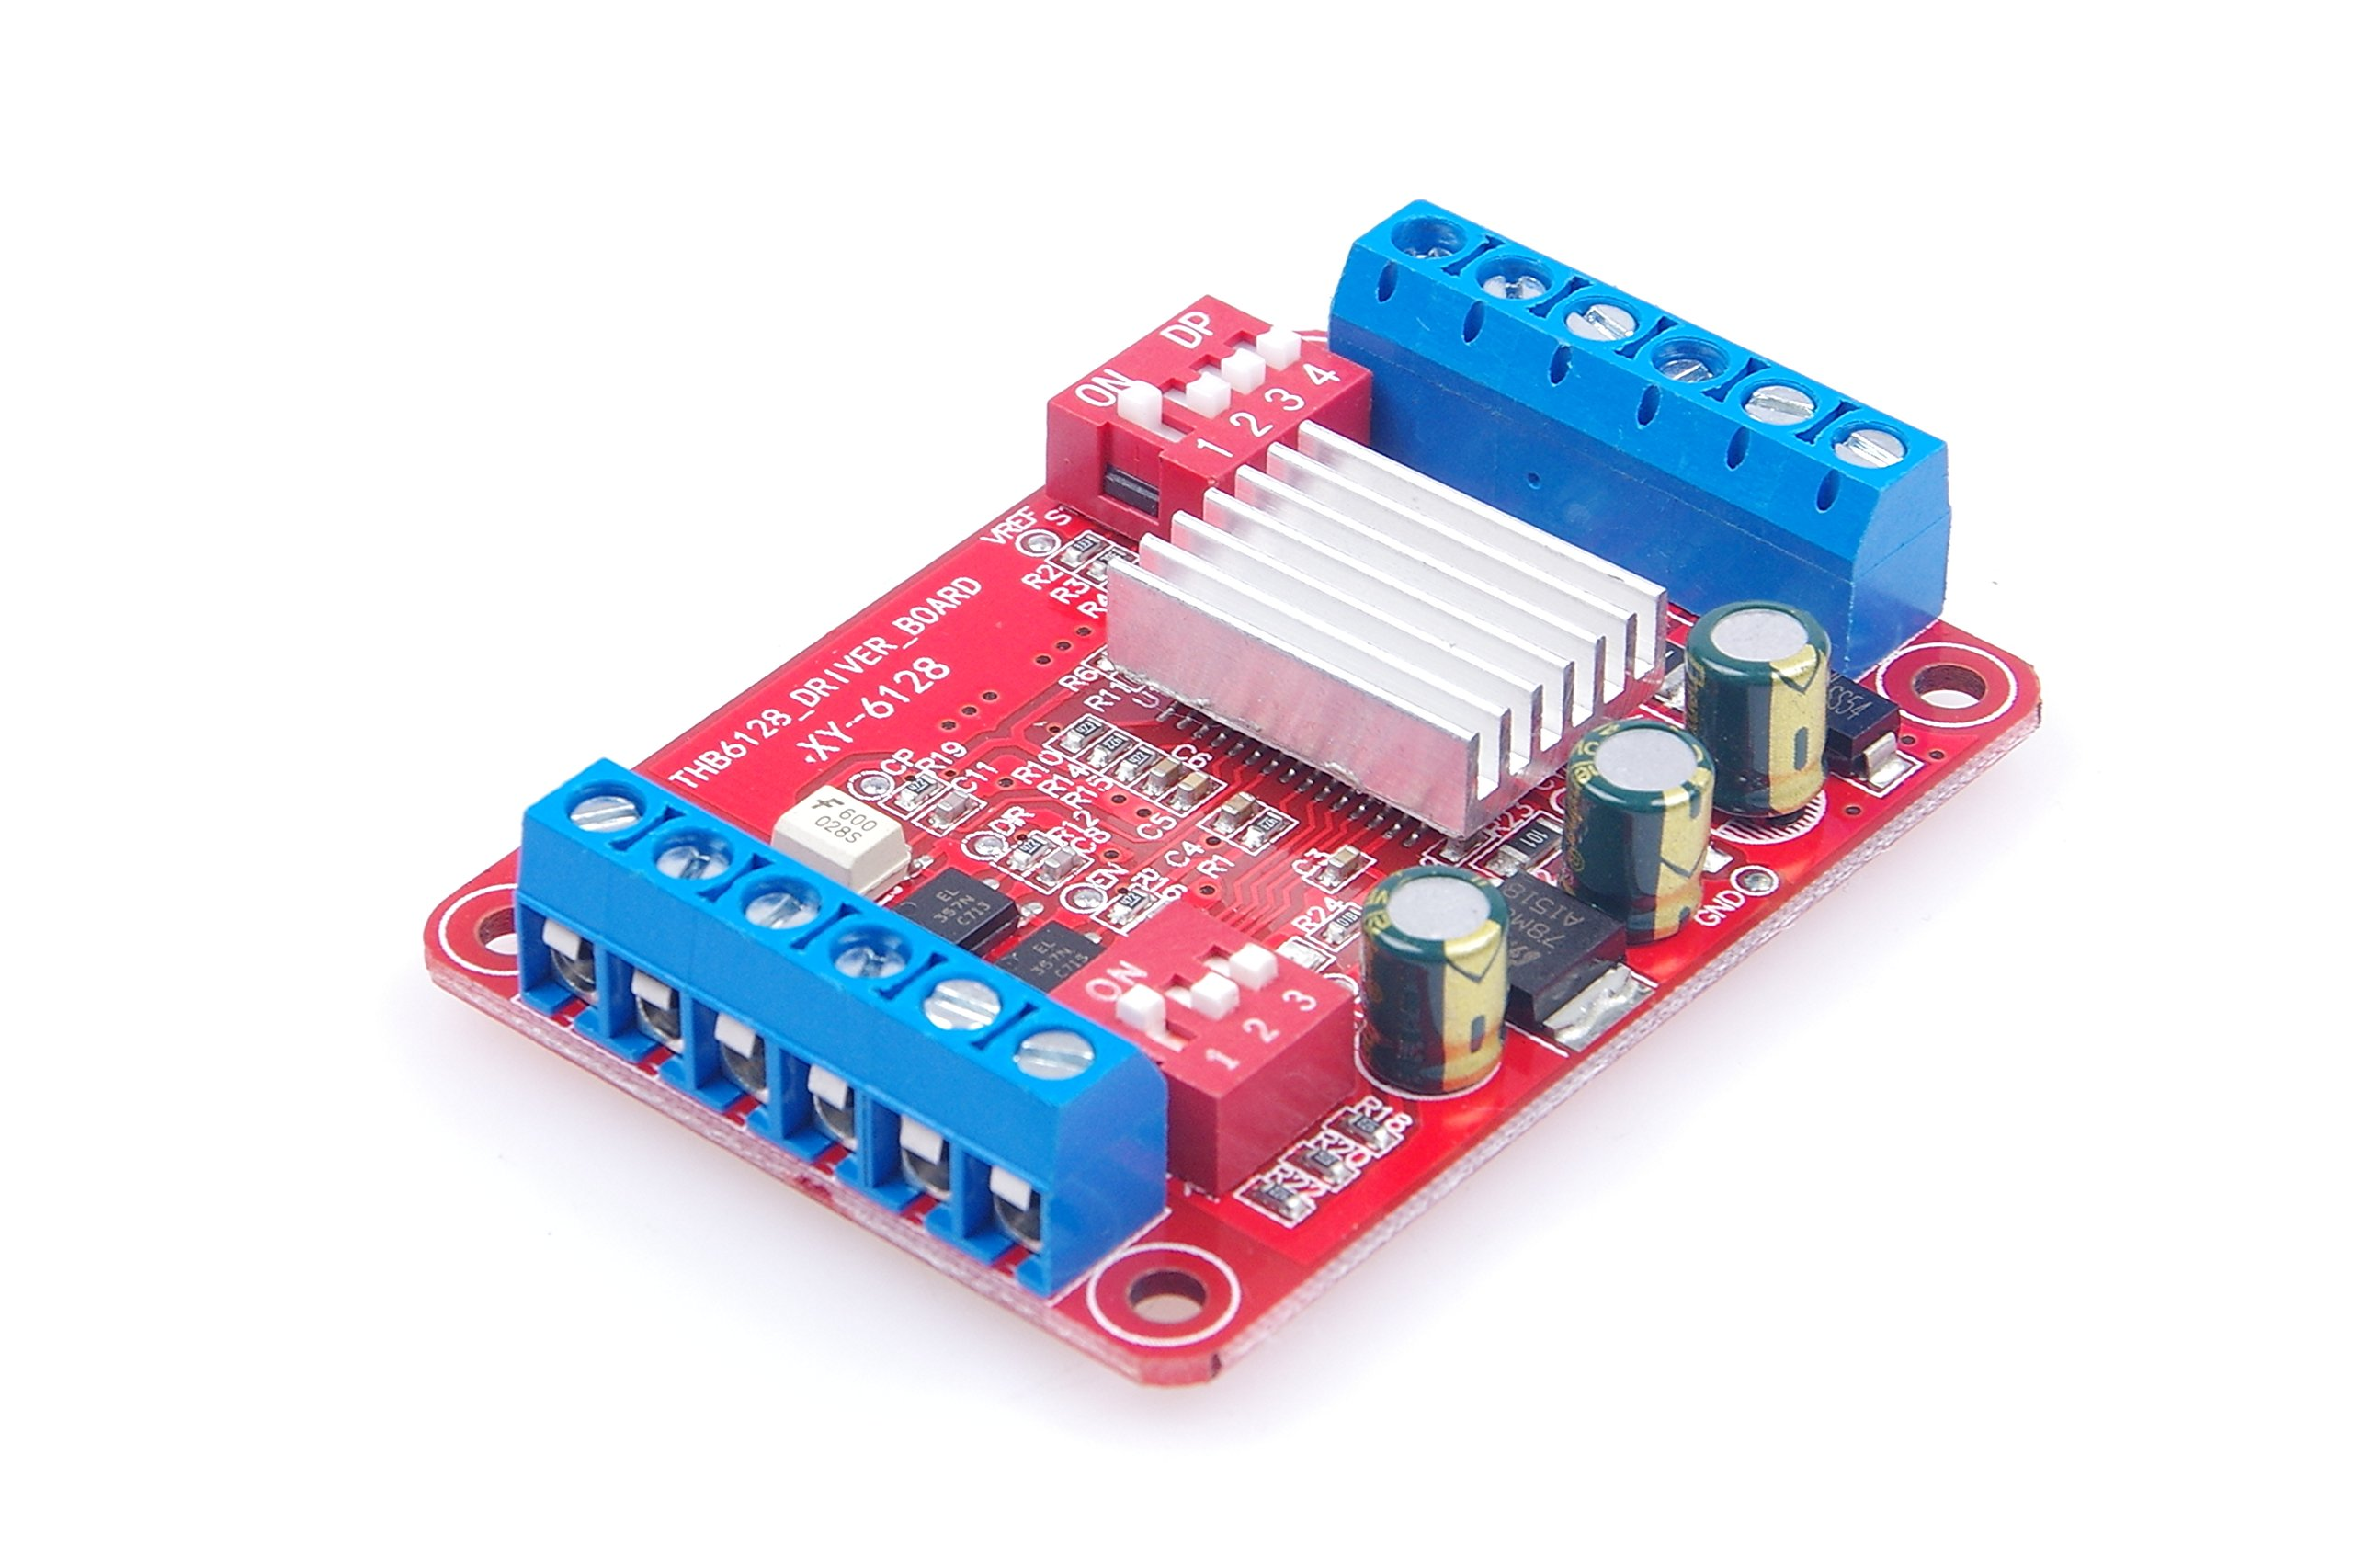 LM YN THB6128 Stepper Motor Drive Control Module Two-phase Four-wire 30V 2A Drive Board 1,2,4,8,16,32,64,128 Subdivision Optional